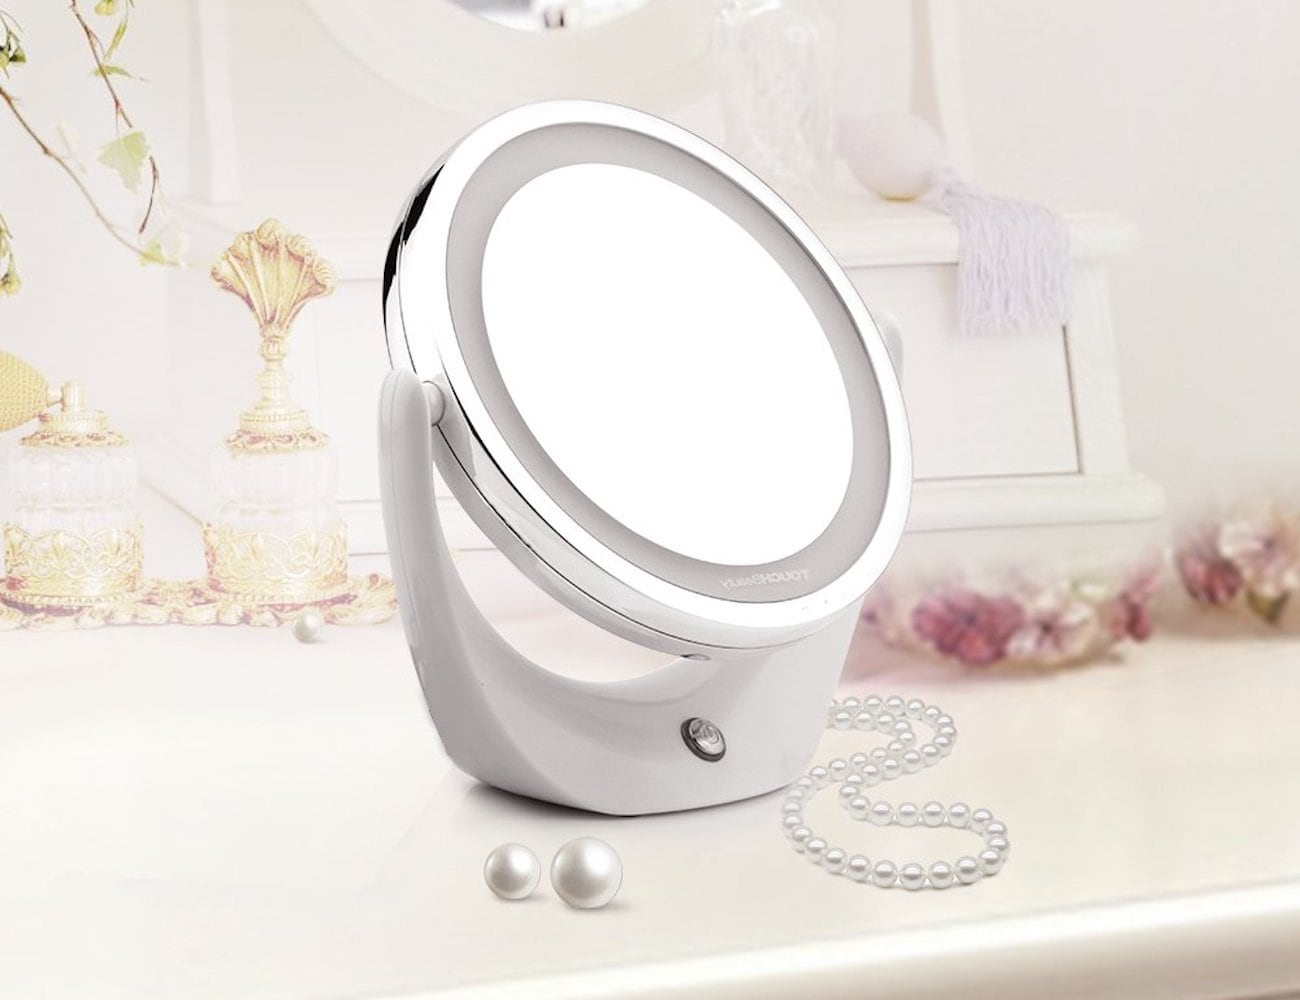 TOUCHBeauty Double-Sided LED Makeup Mirror magnifies up to five times